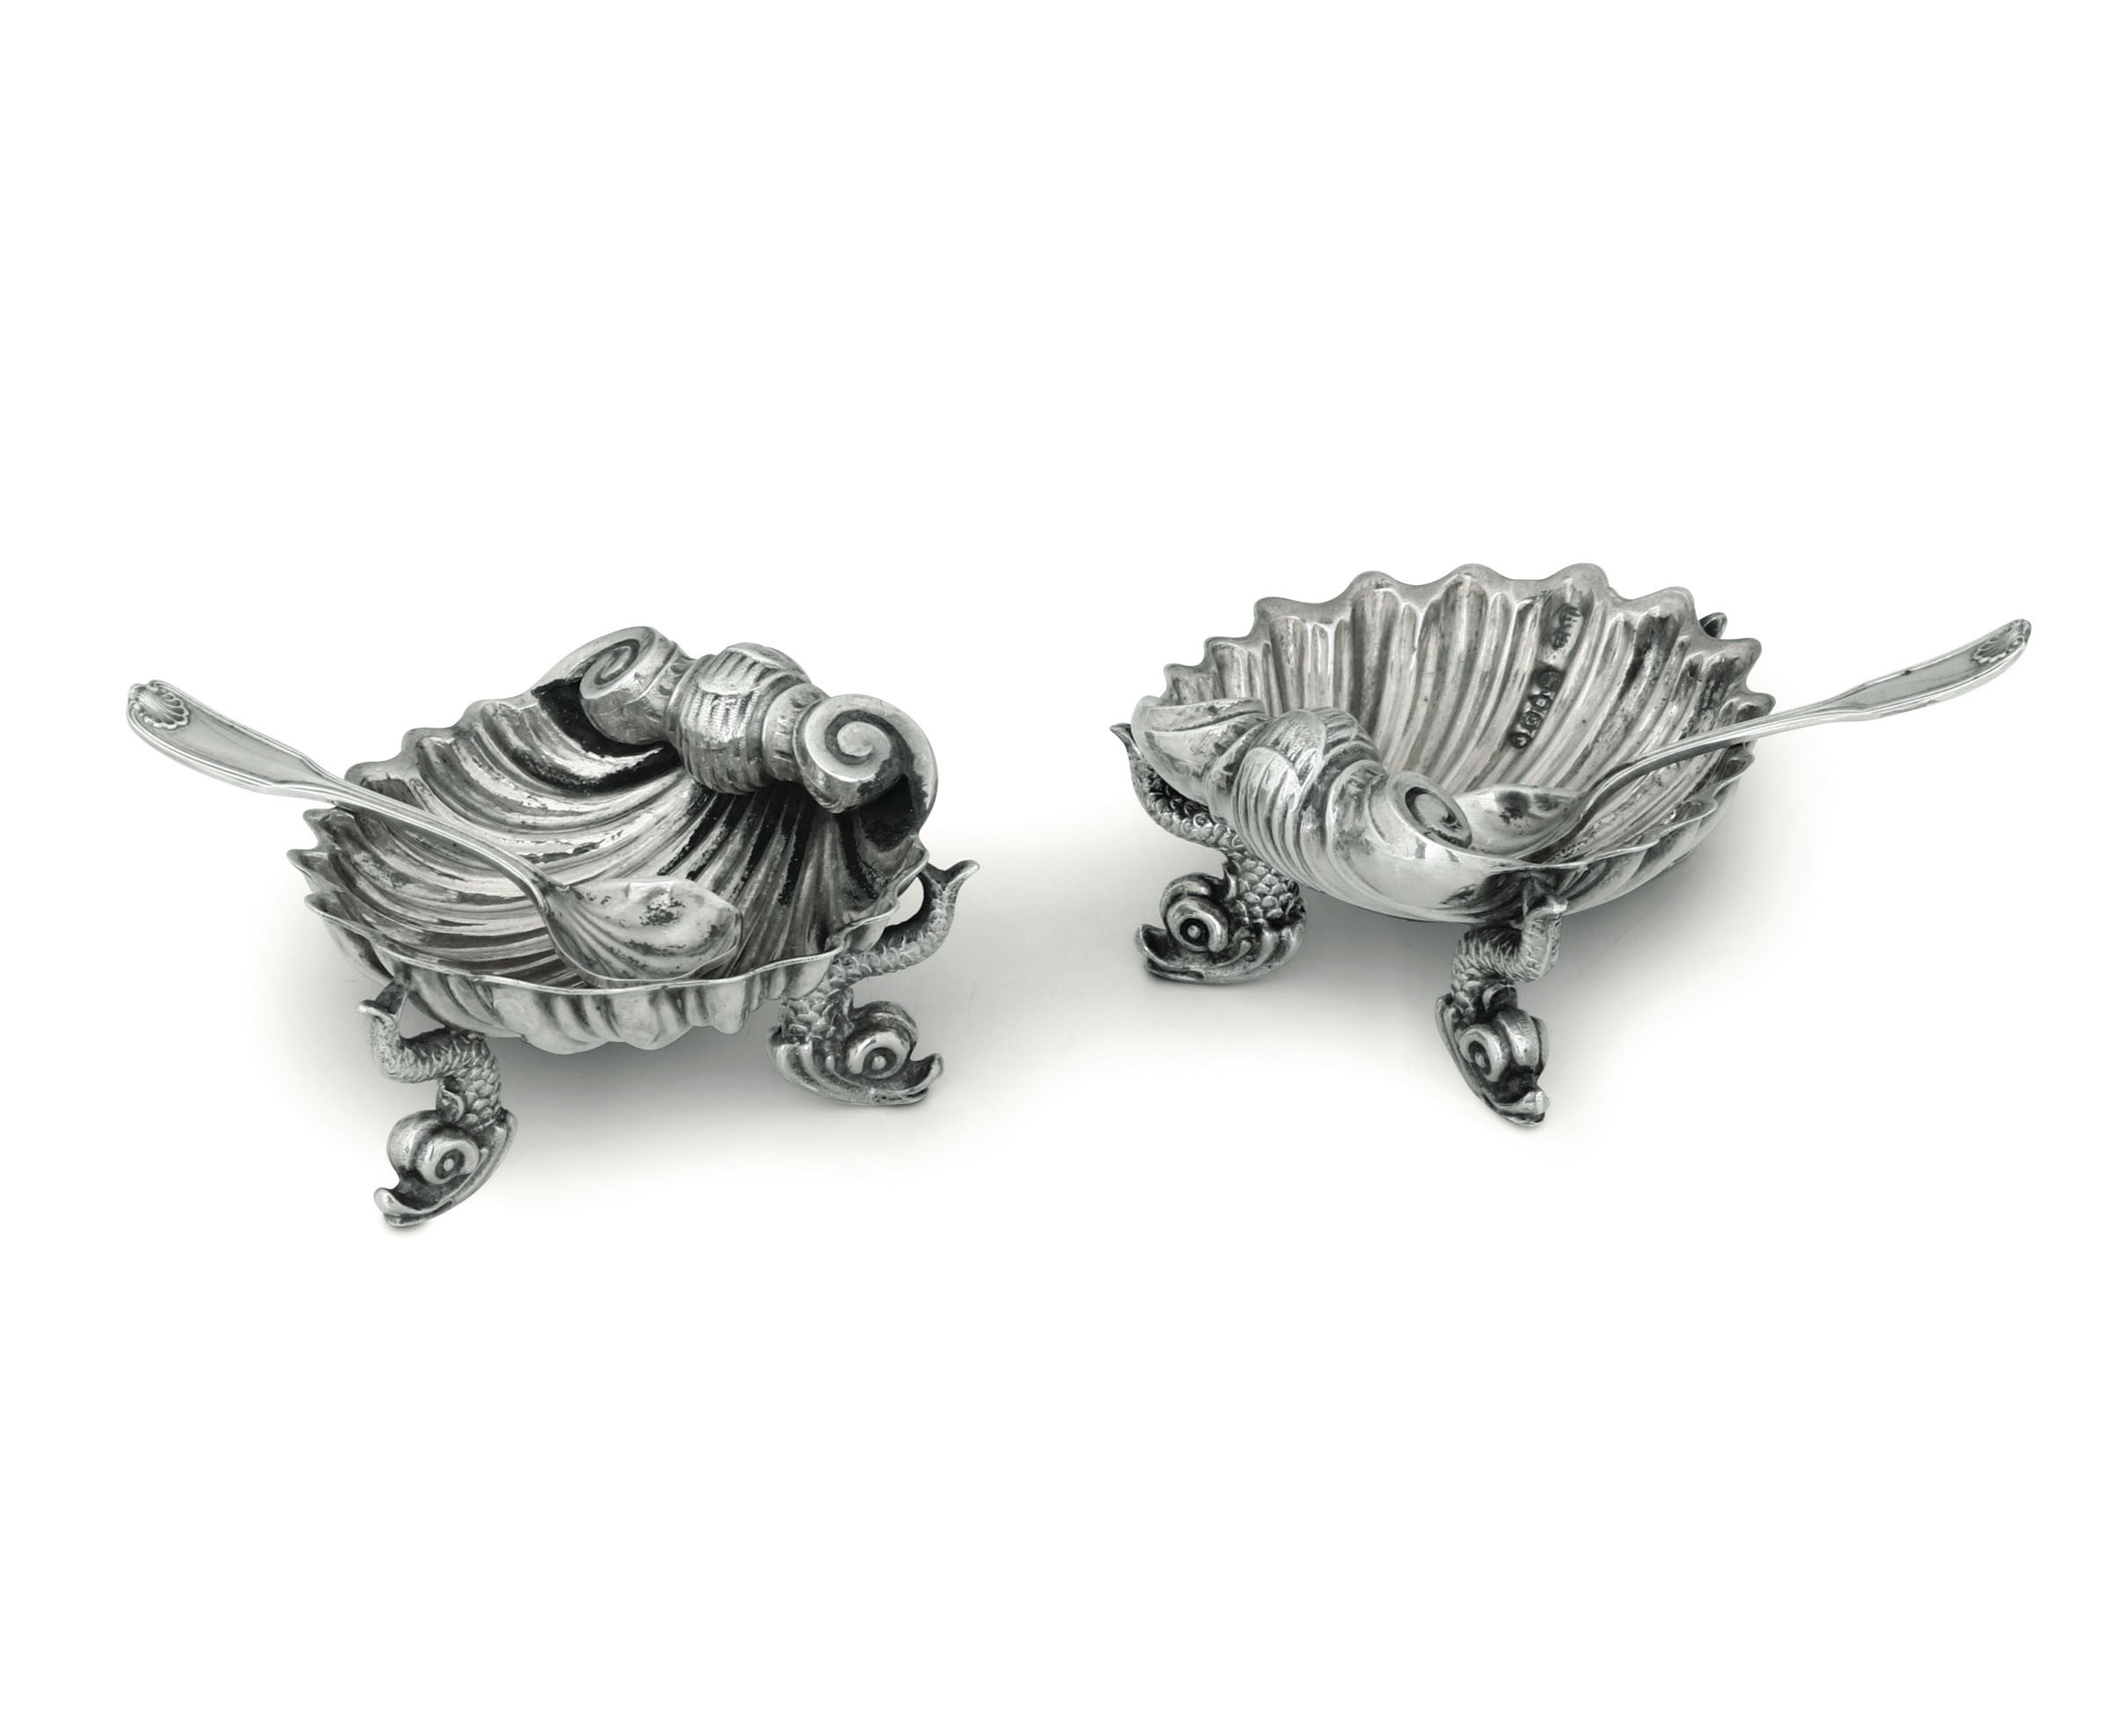 Lot 30 - Two silver salt bowls and spoons, London, 1869 - Molten and chiselled silver. [...]